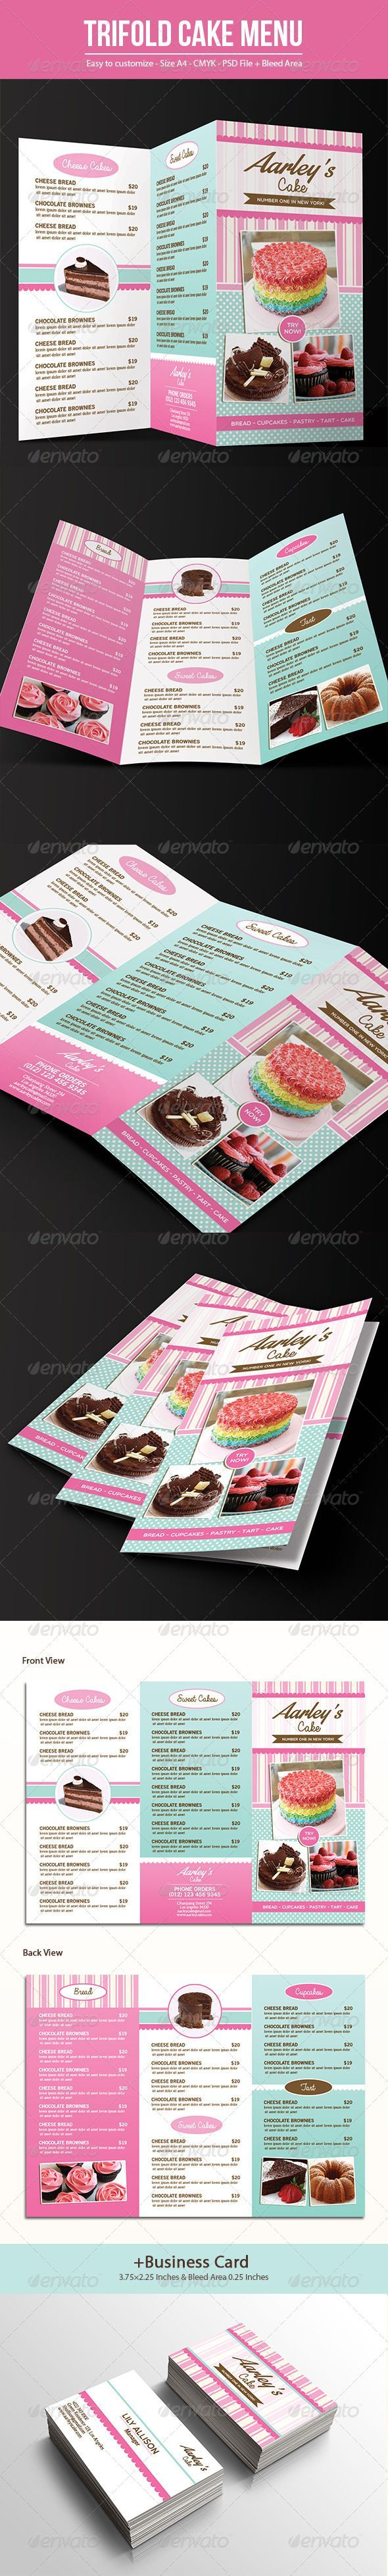 Trifold cake menu business card menu business cards and card trifold cake menu business card template design speisekarte download graphicriver wajeb Image collections